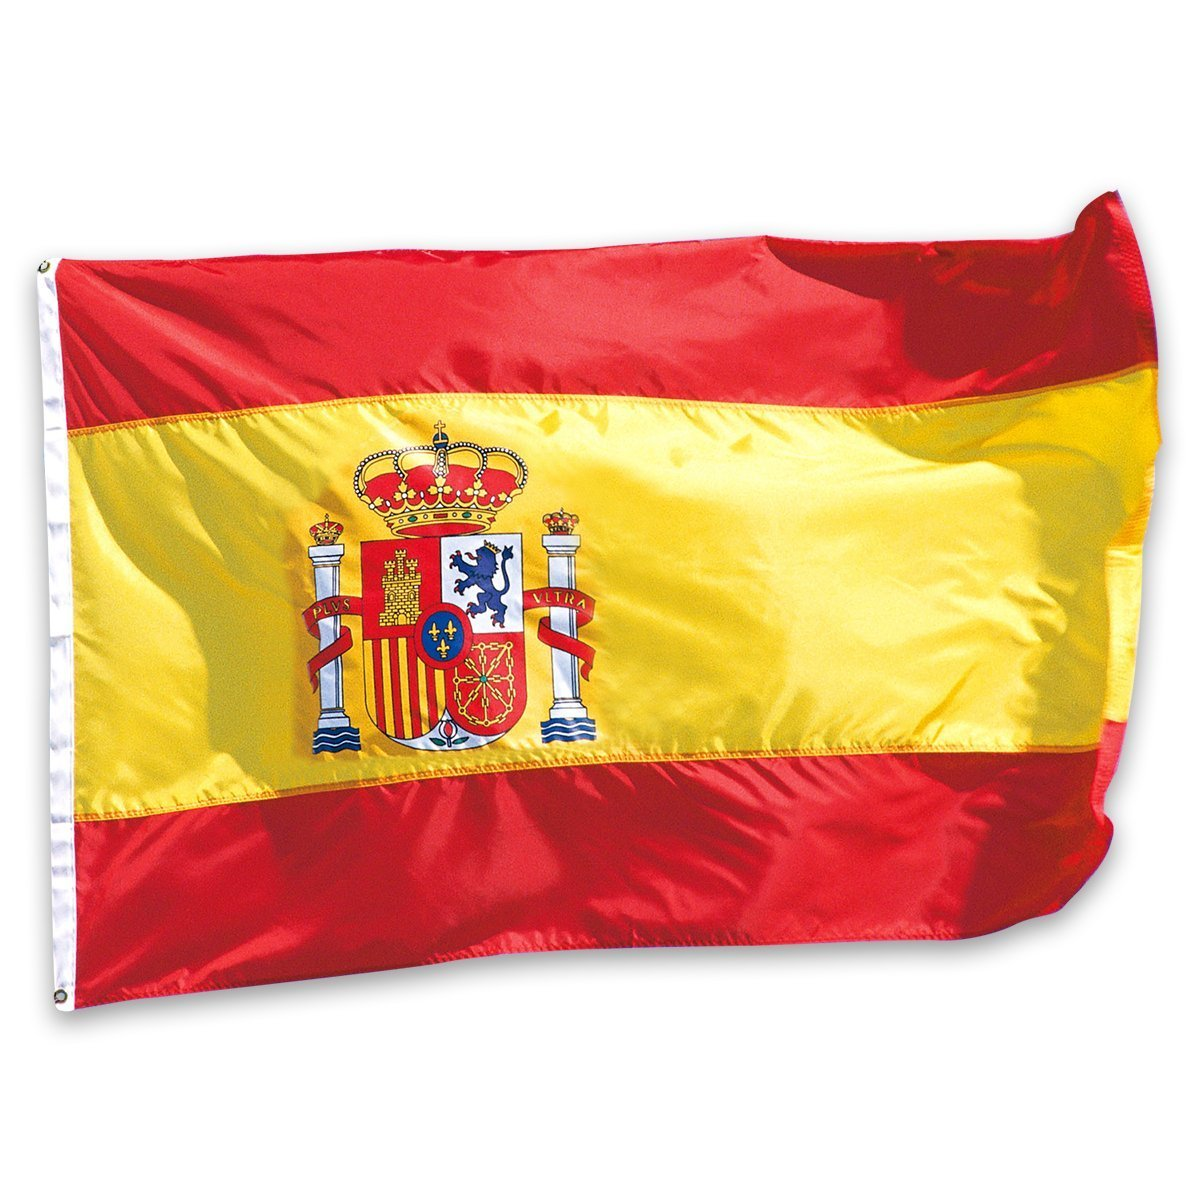 Naisdier Spain Flag 5 * 3ft Polyester Flag Perfect for Outdoor & Indoor 2018 World Cup Large Spanish Flag